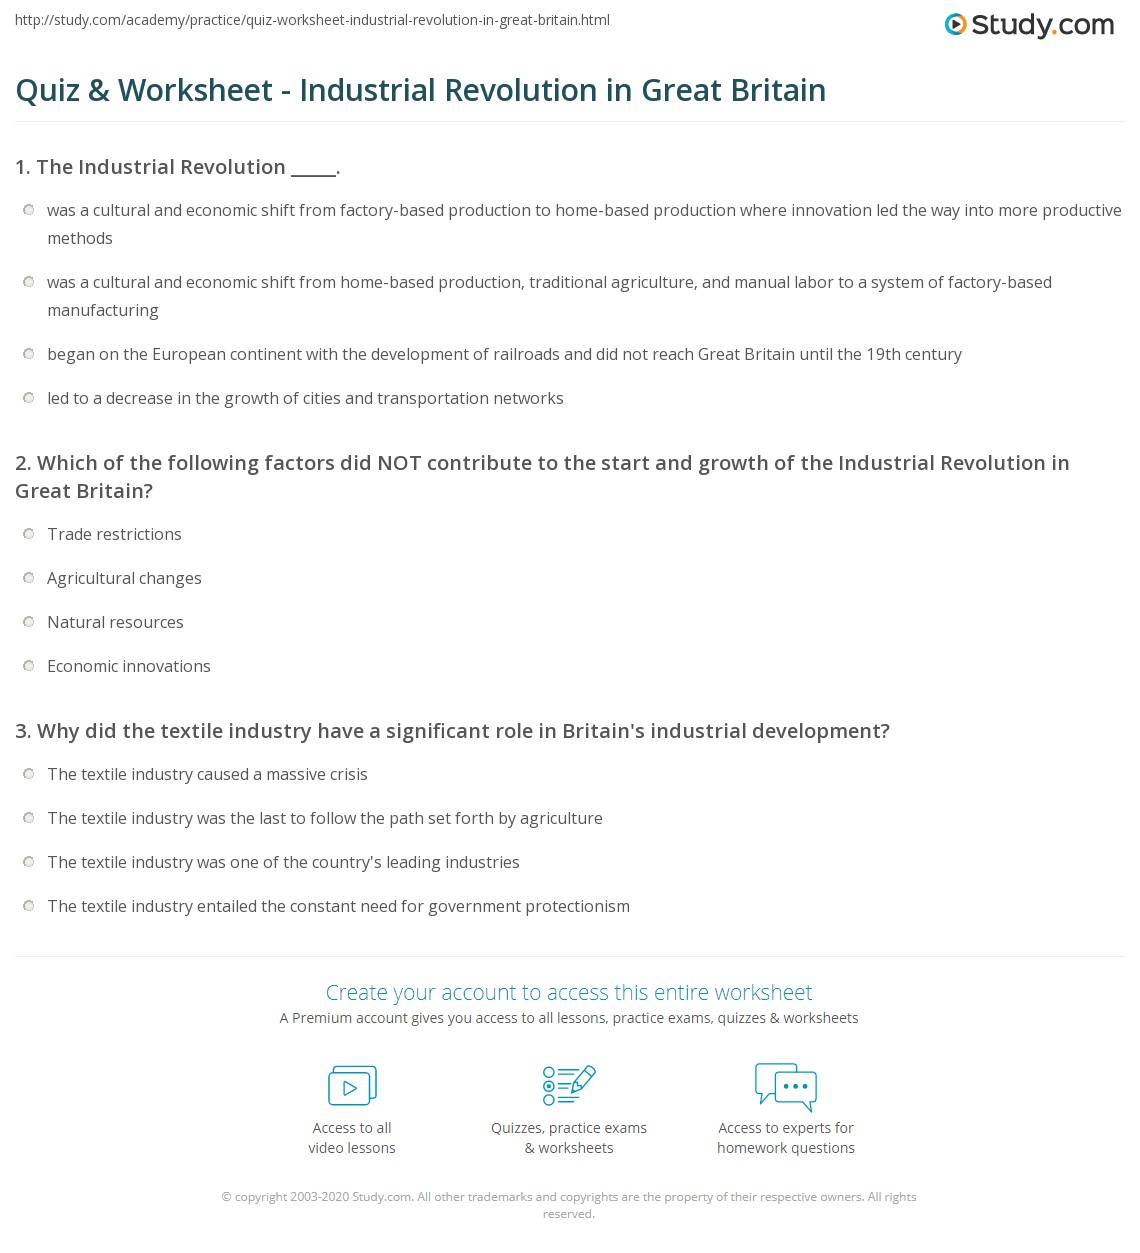 Worksheets Industrial Revolution Worksheets quiz worksheet industrial revolution in great britain study com print leads the worksheet